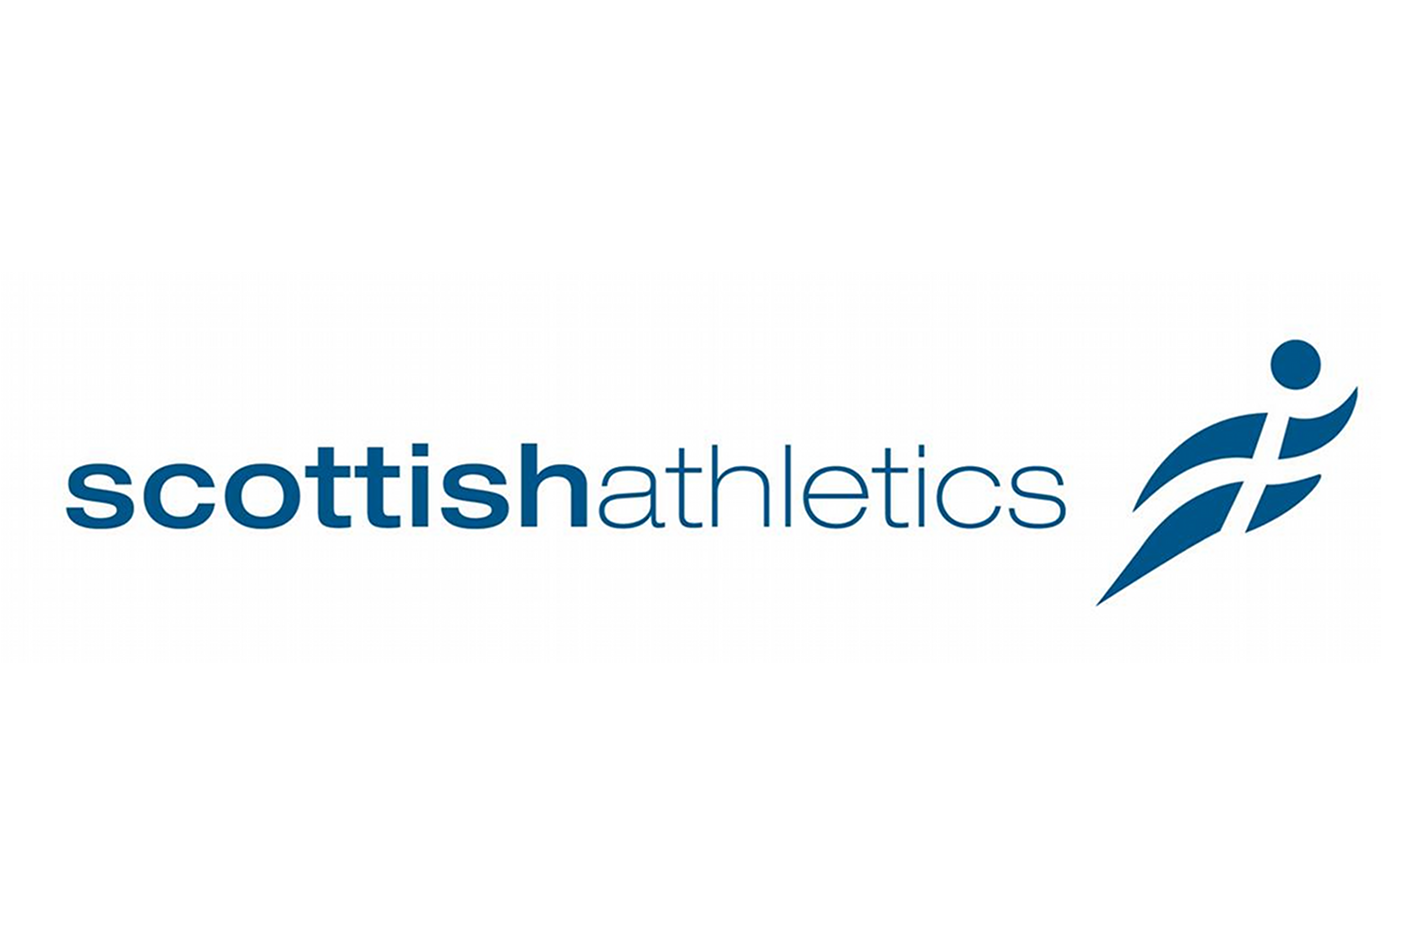 WATCH: 'I Challenge You' exercises can help preparation for competition - Scottish Athletics